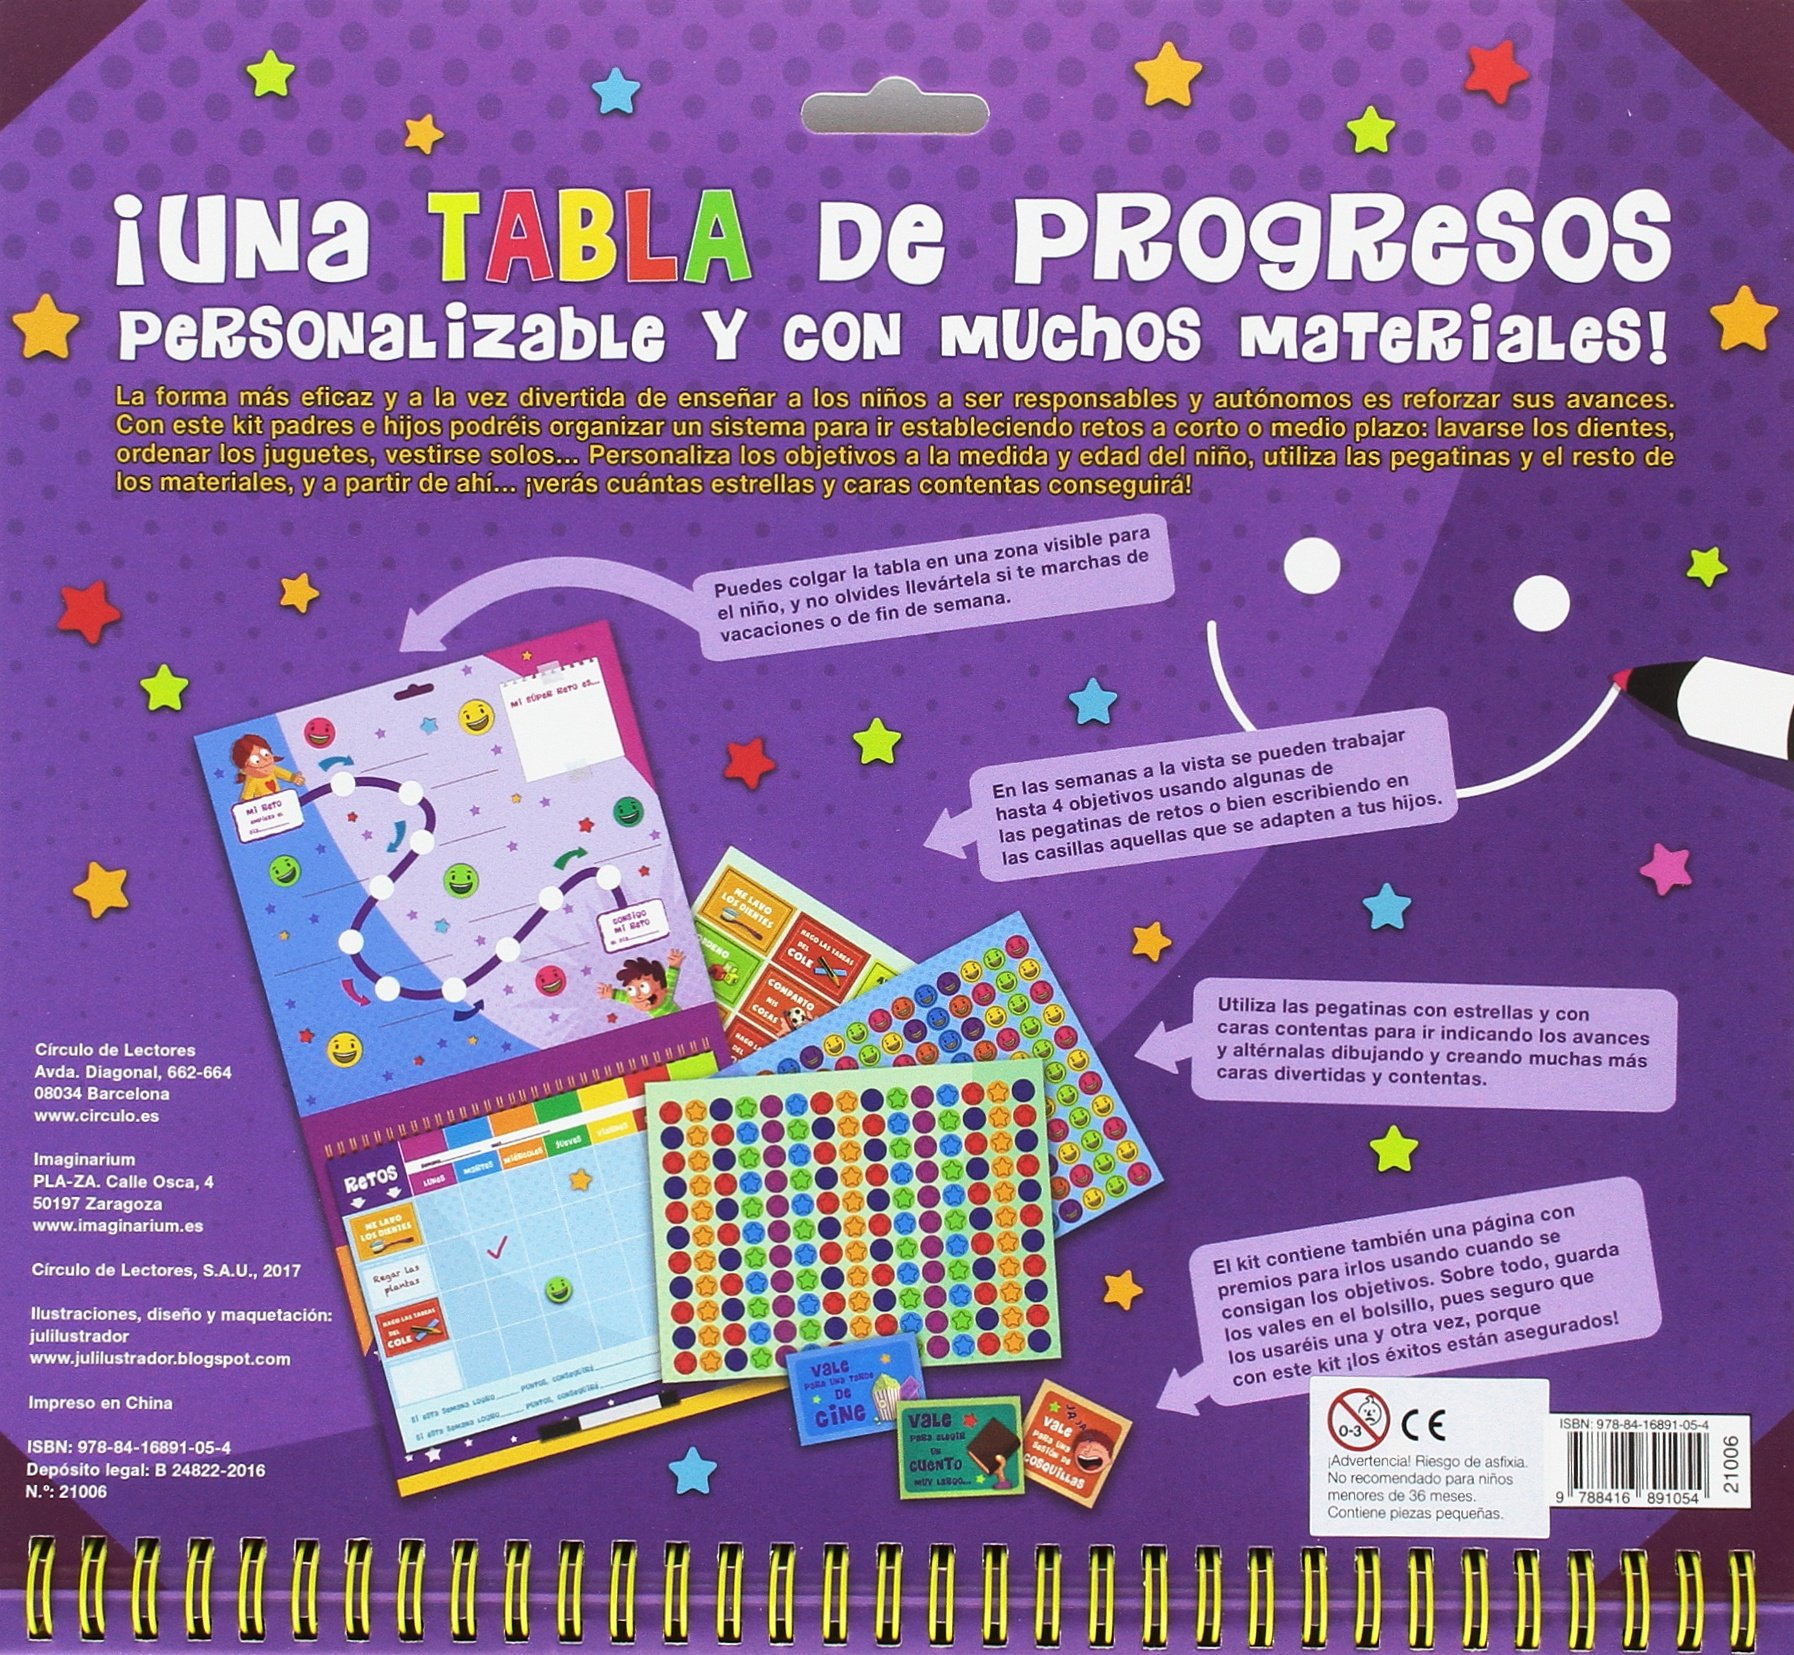 Mi kit tabla de progresos Imaginarium Circulo - Libros CAST ...